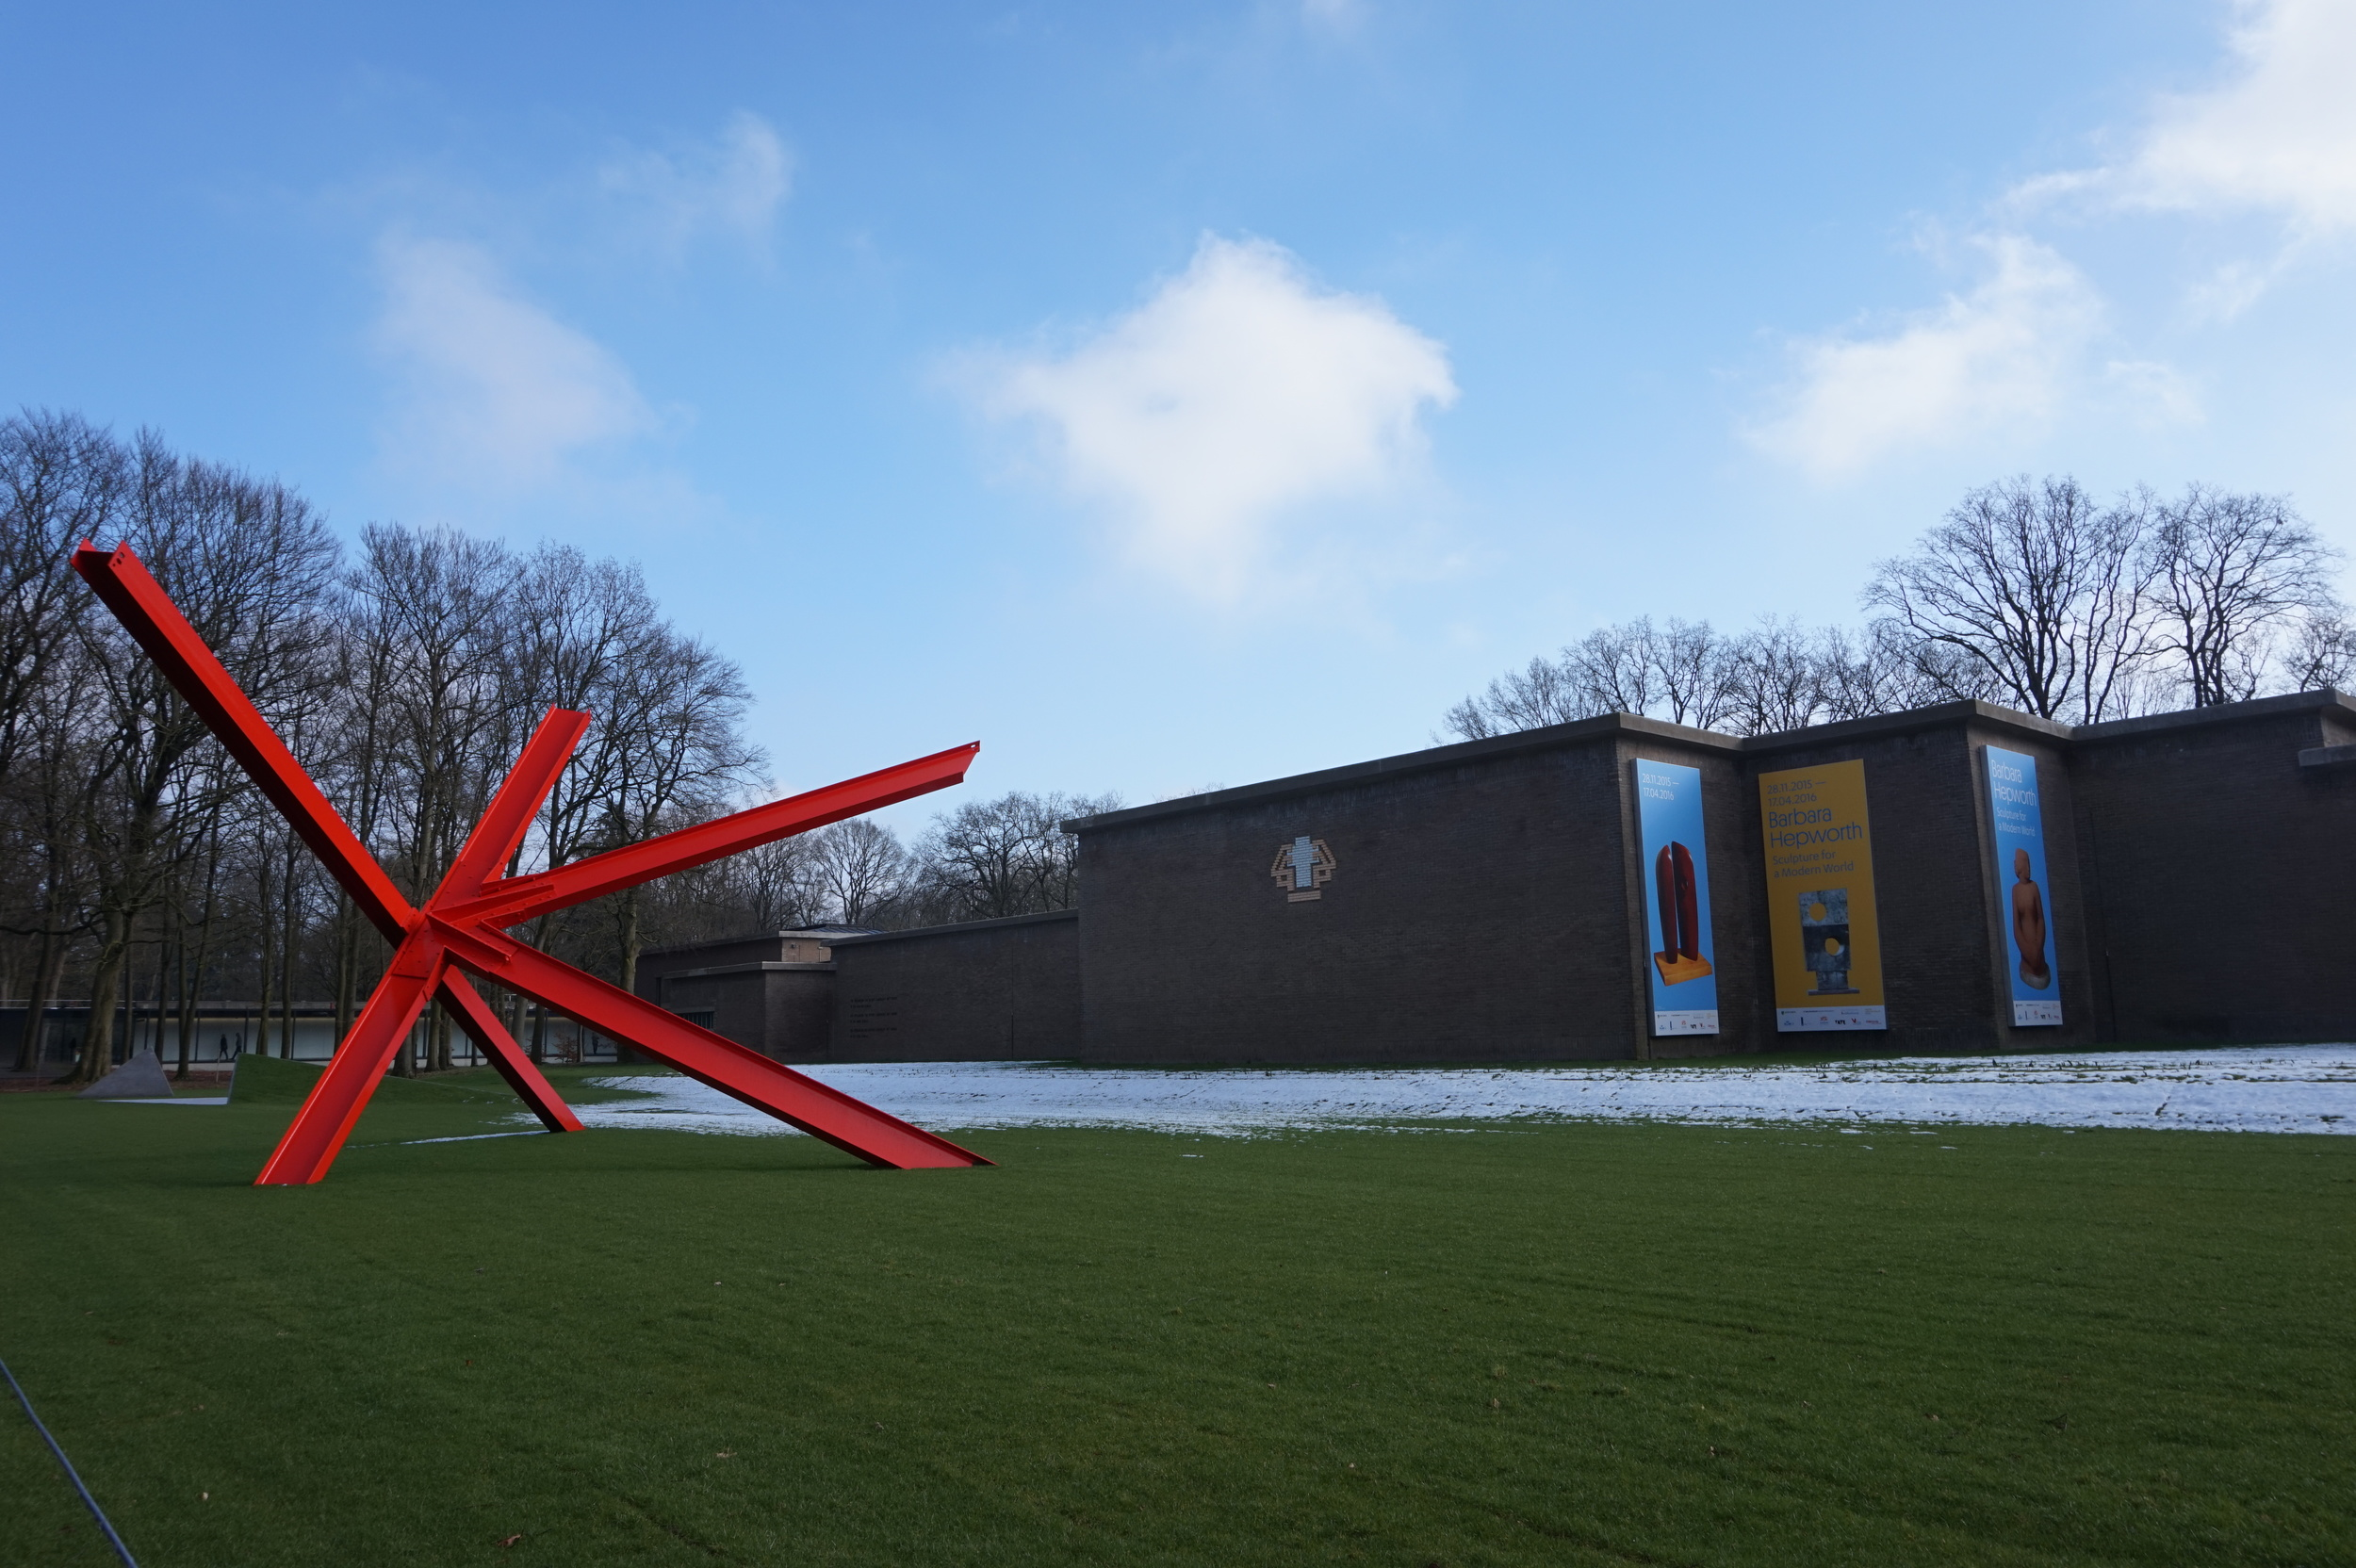 No trip is complete without a visit to the Kröller-Müller Museum!